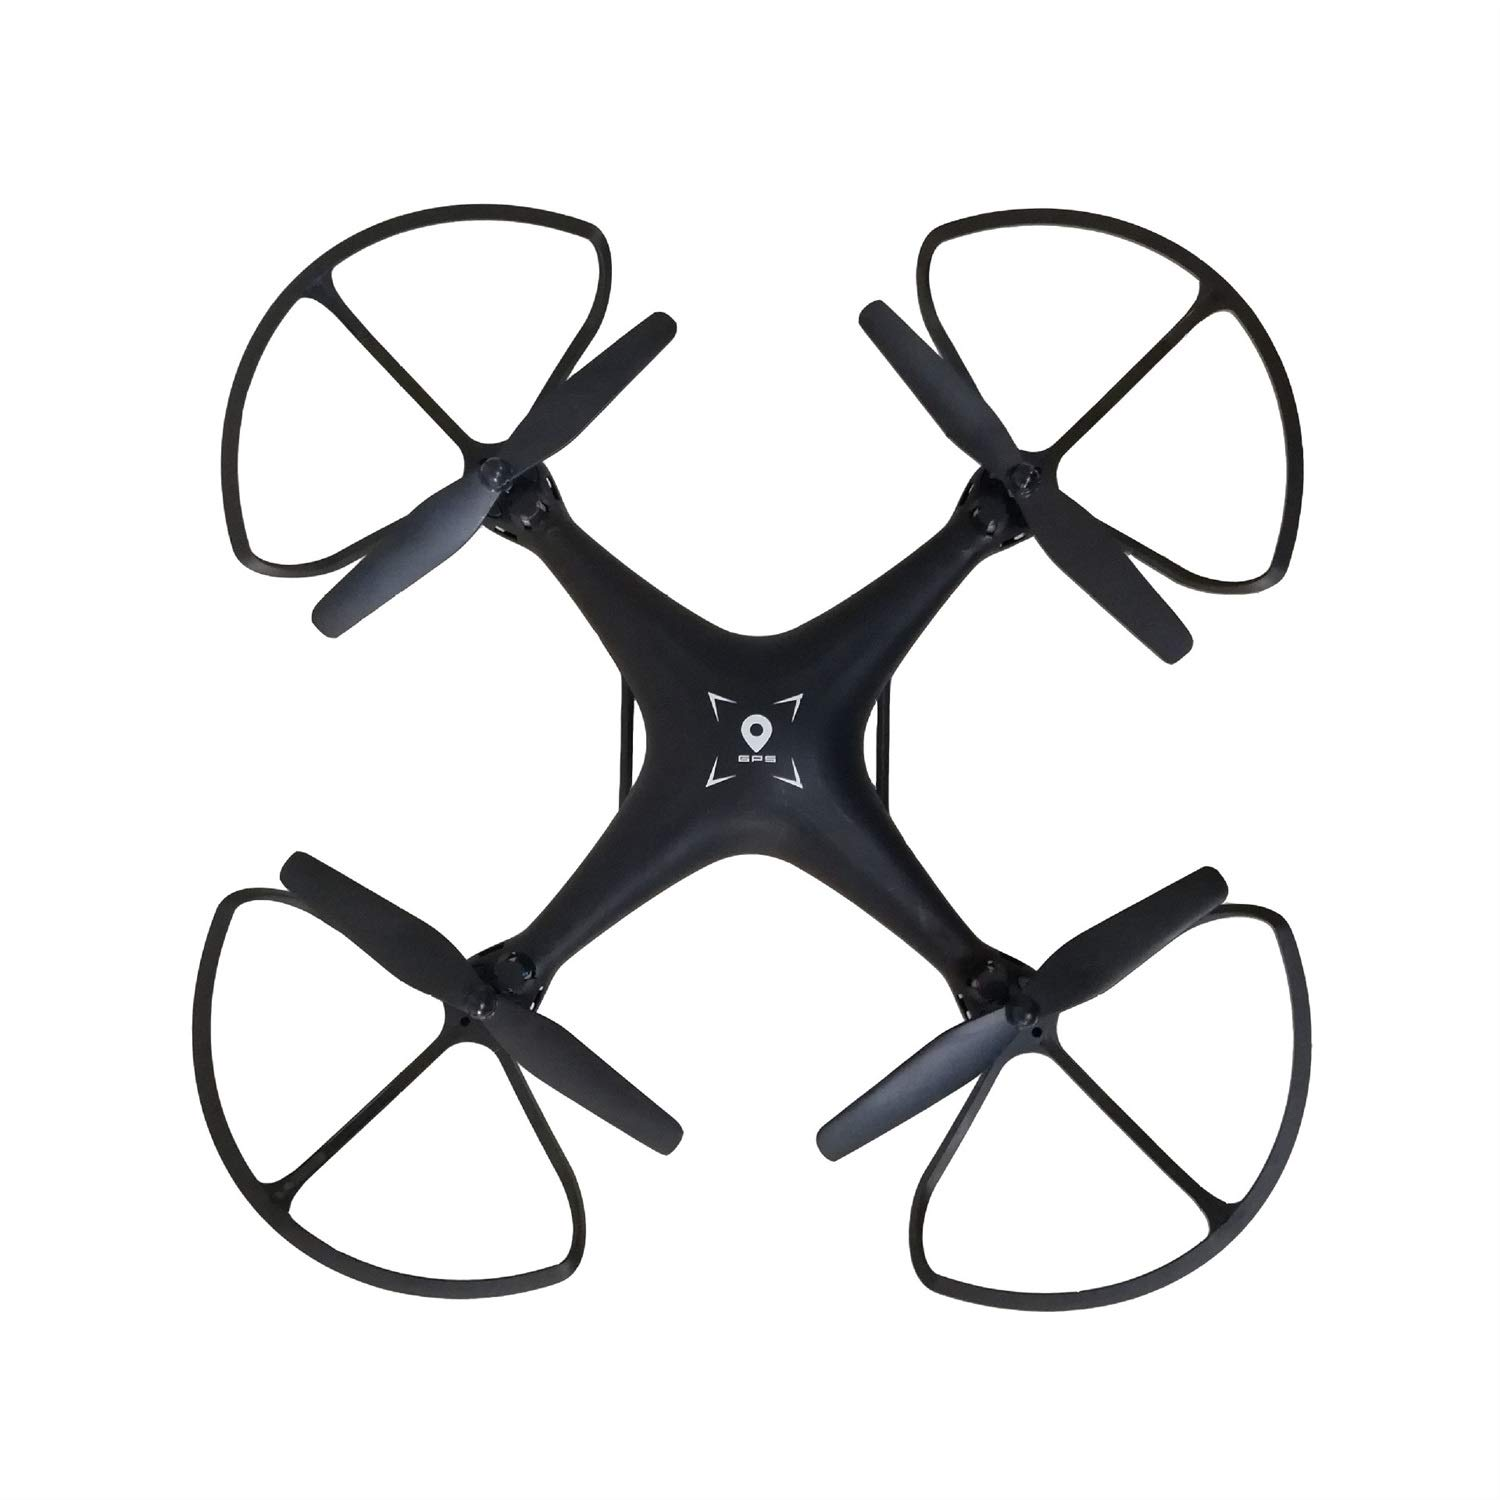 WANG XIN GPS Fixed-Point Fixed-Four-axis Aircraft Professional high-Definition Aerial Drone Remote Control Aircraft by WANG XIN (Image #2)